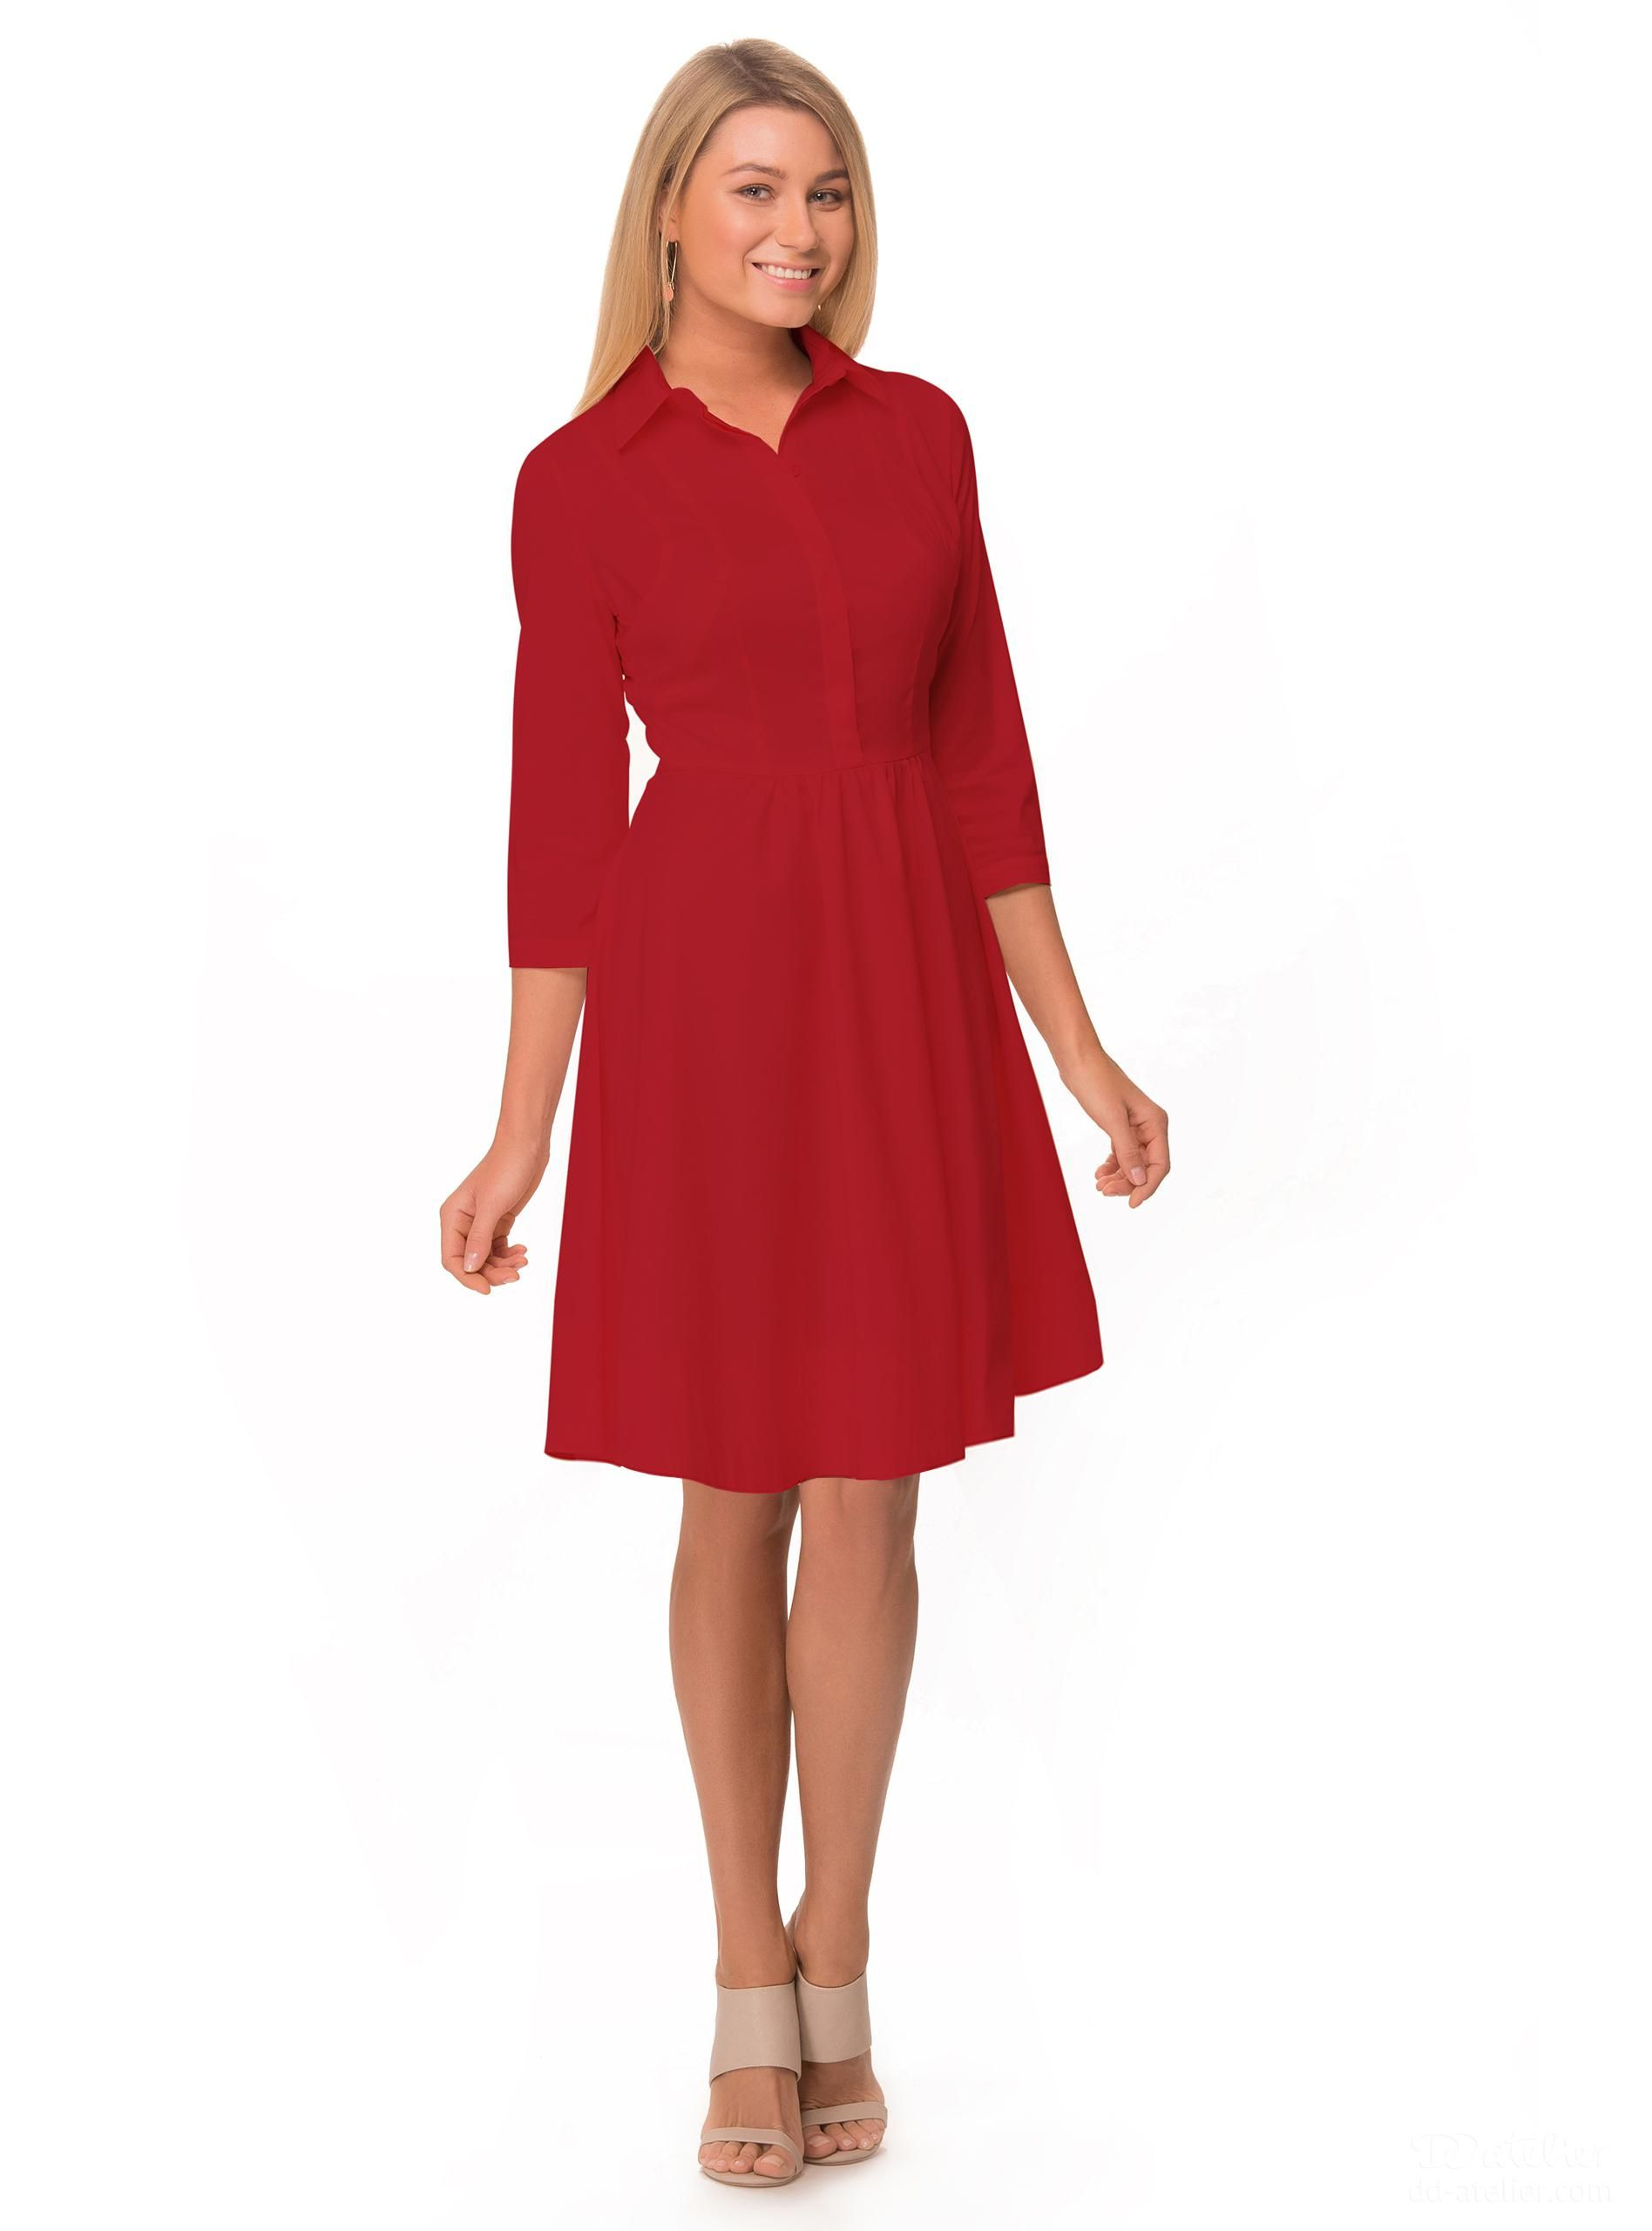 2391cdac84c77 Shirt-Dress 1-280 in red, for a big bust | My Style | Dresses, Shirt ...